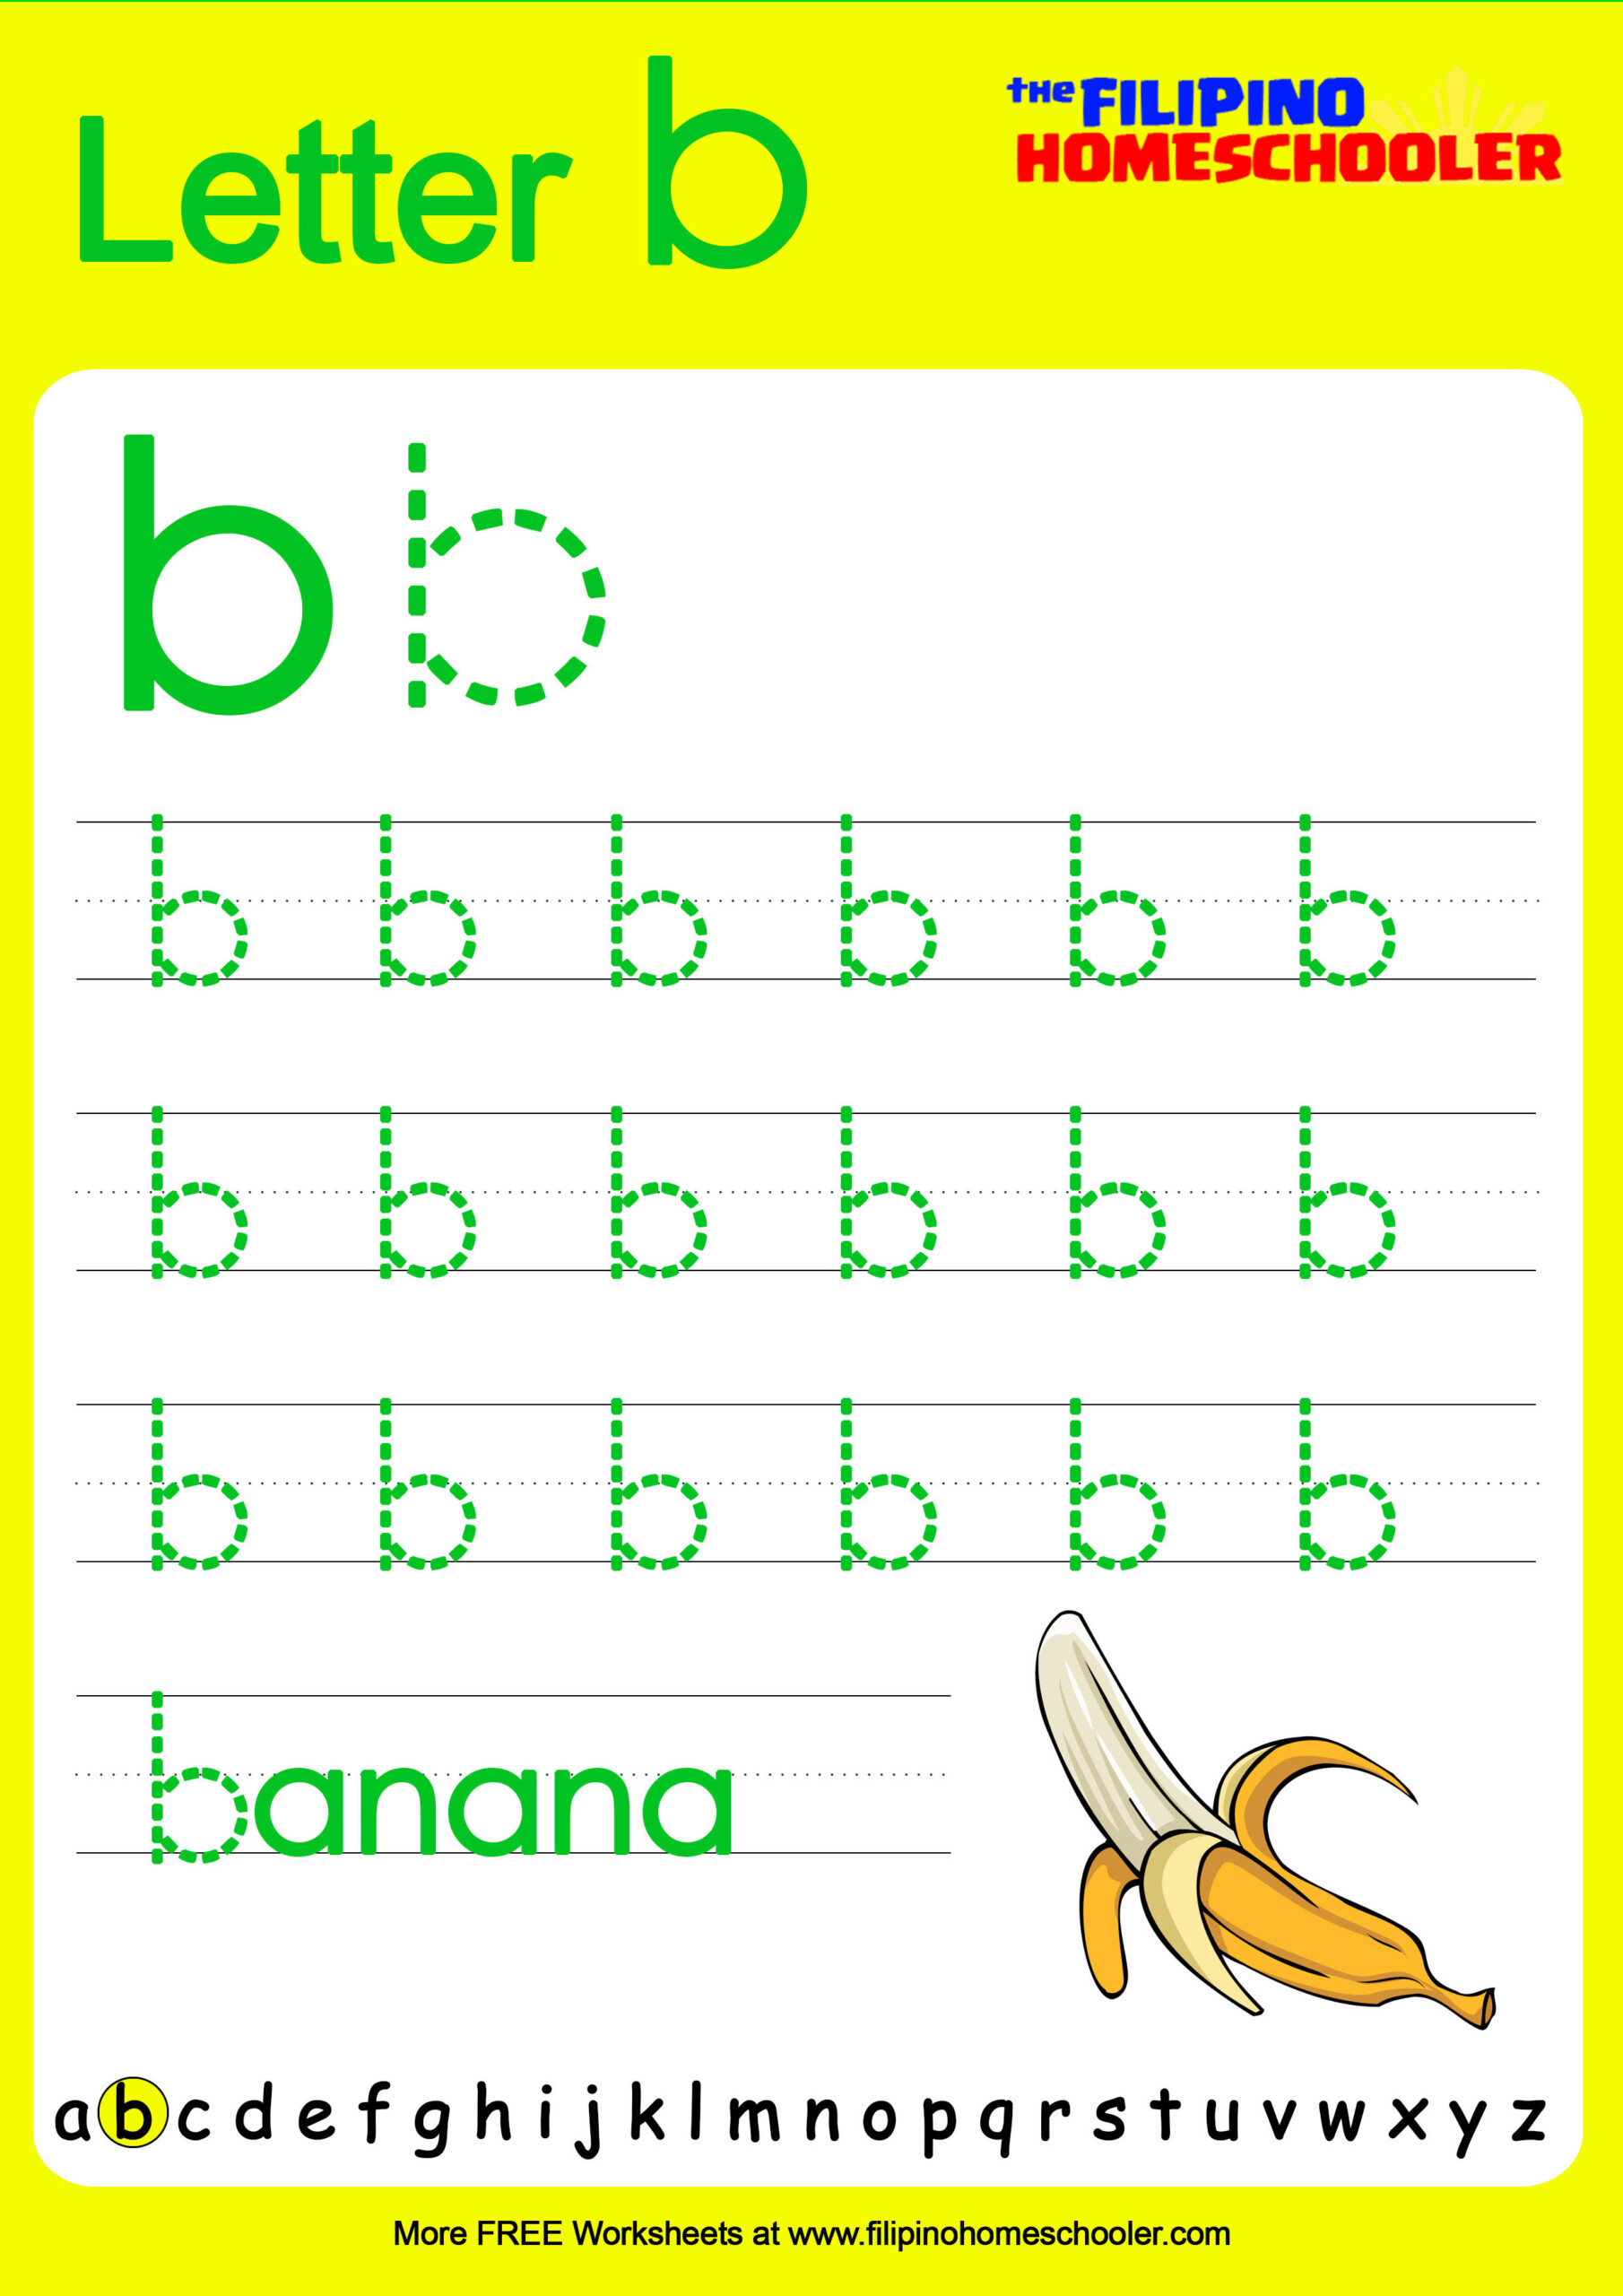 Free Lowercase Letter Tracing Worksheets – The Filipino with regard to Lower Case Letters Tracing Sheets